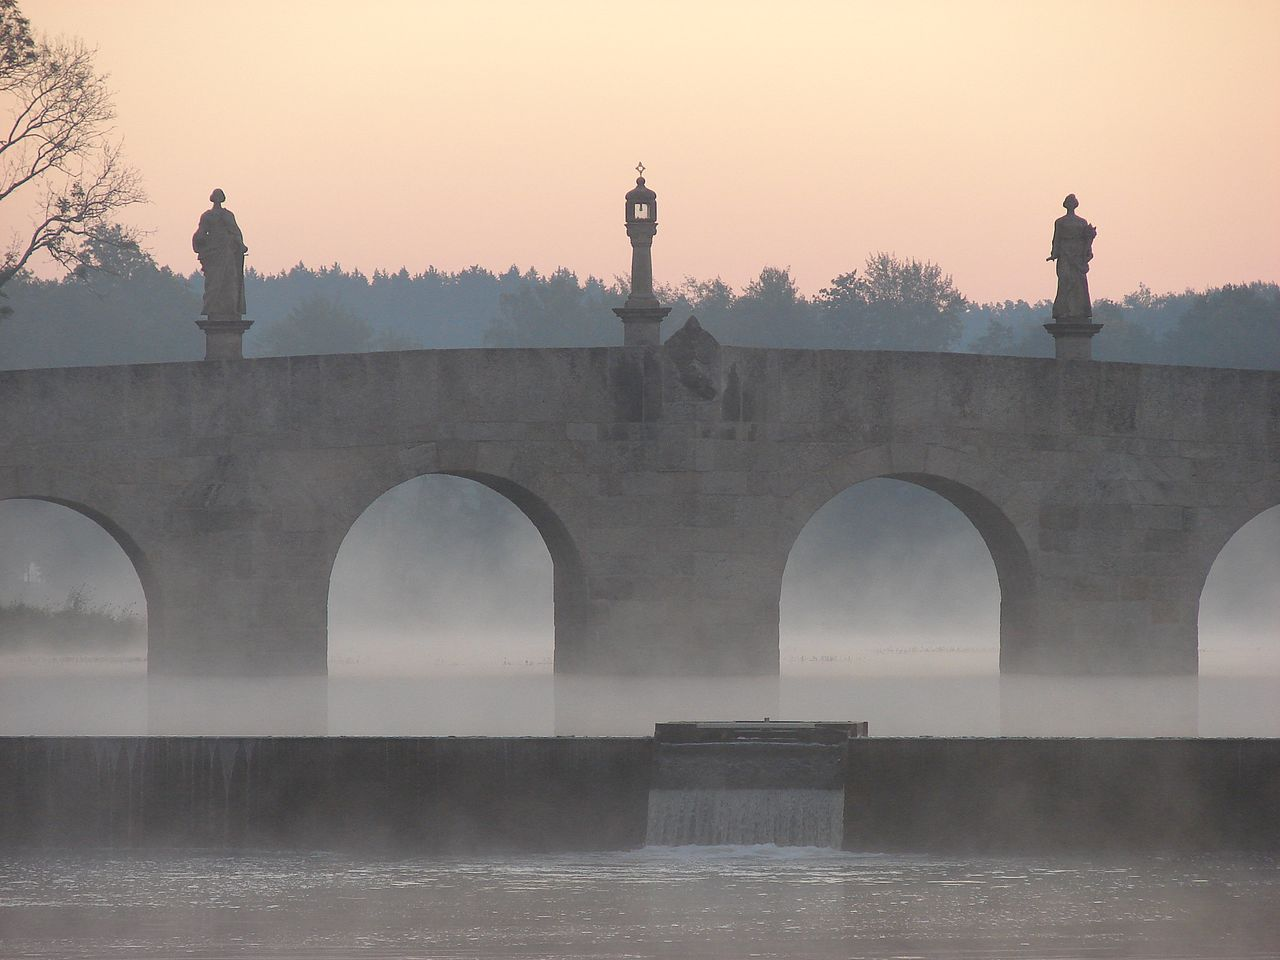 Sunrise over a bridge in northern Bavaria